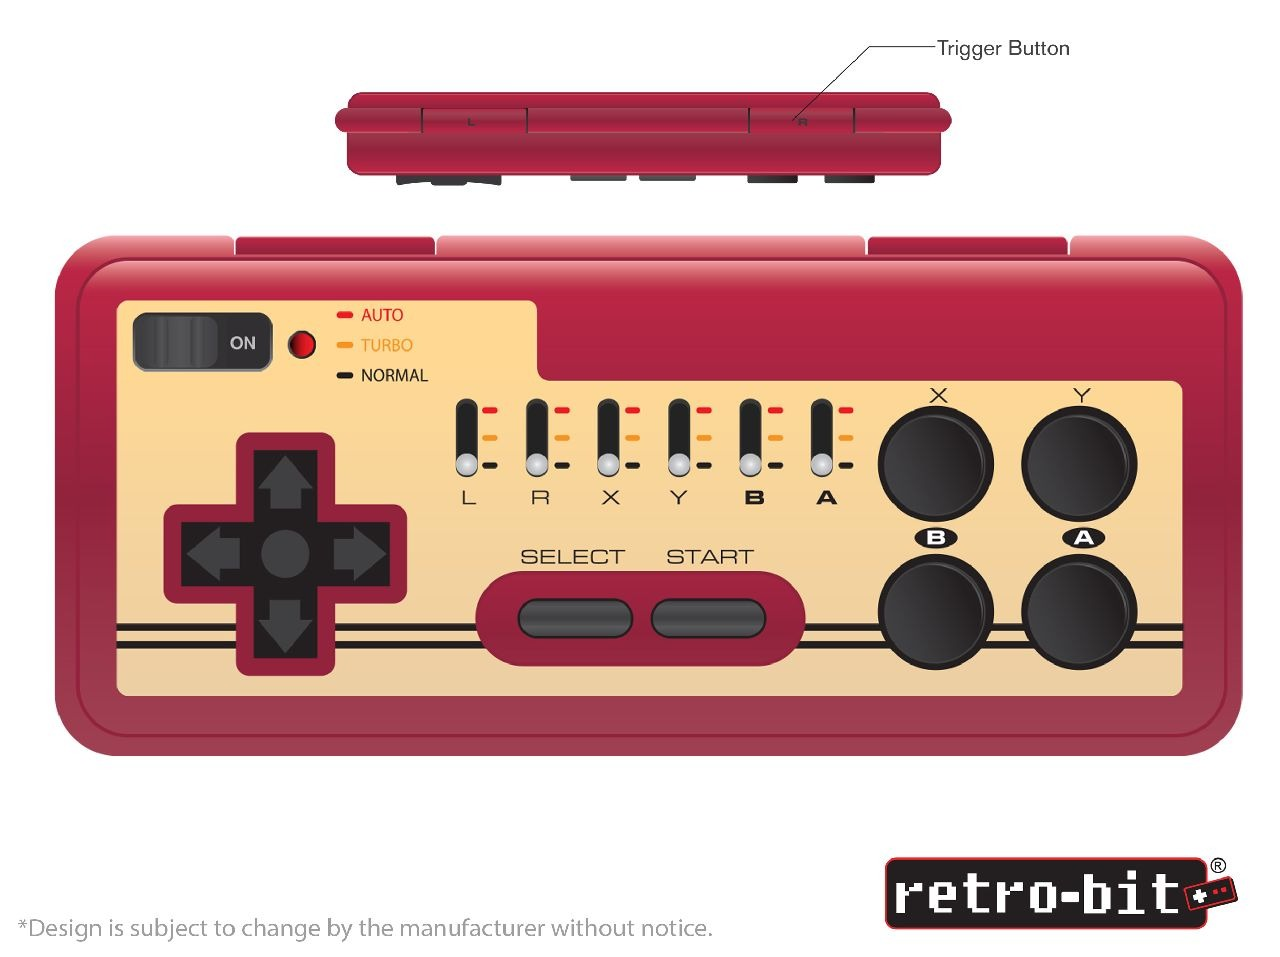 Retro-bit Offering Wireless Controllers for Retro Consoles